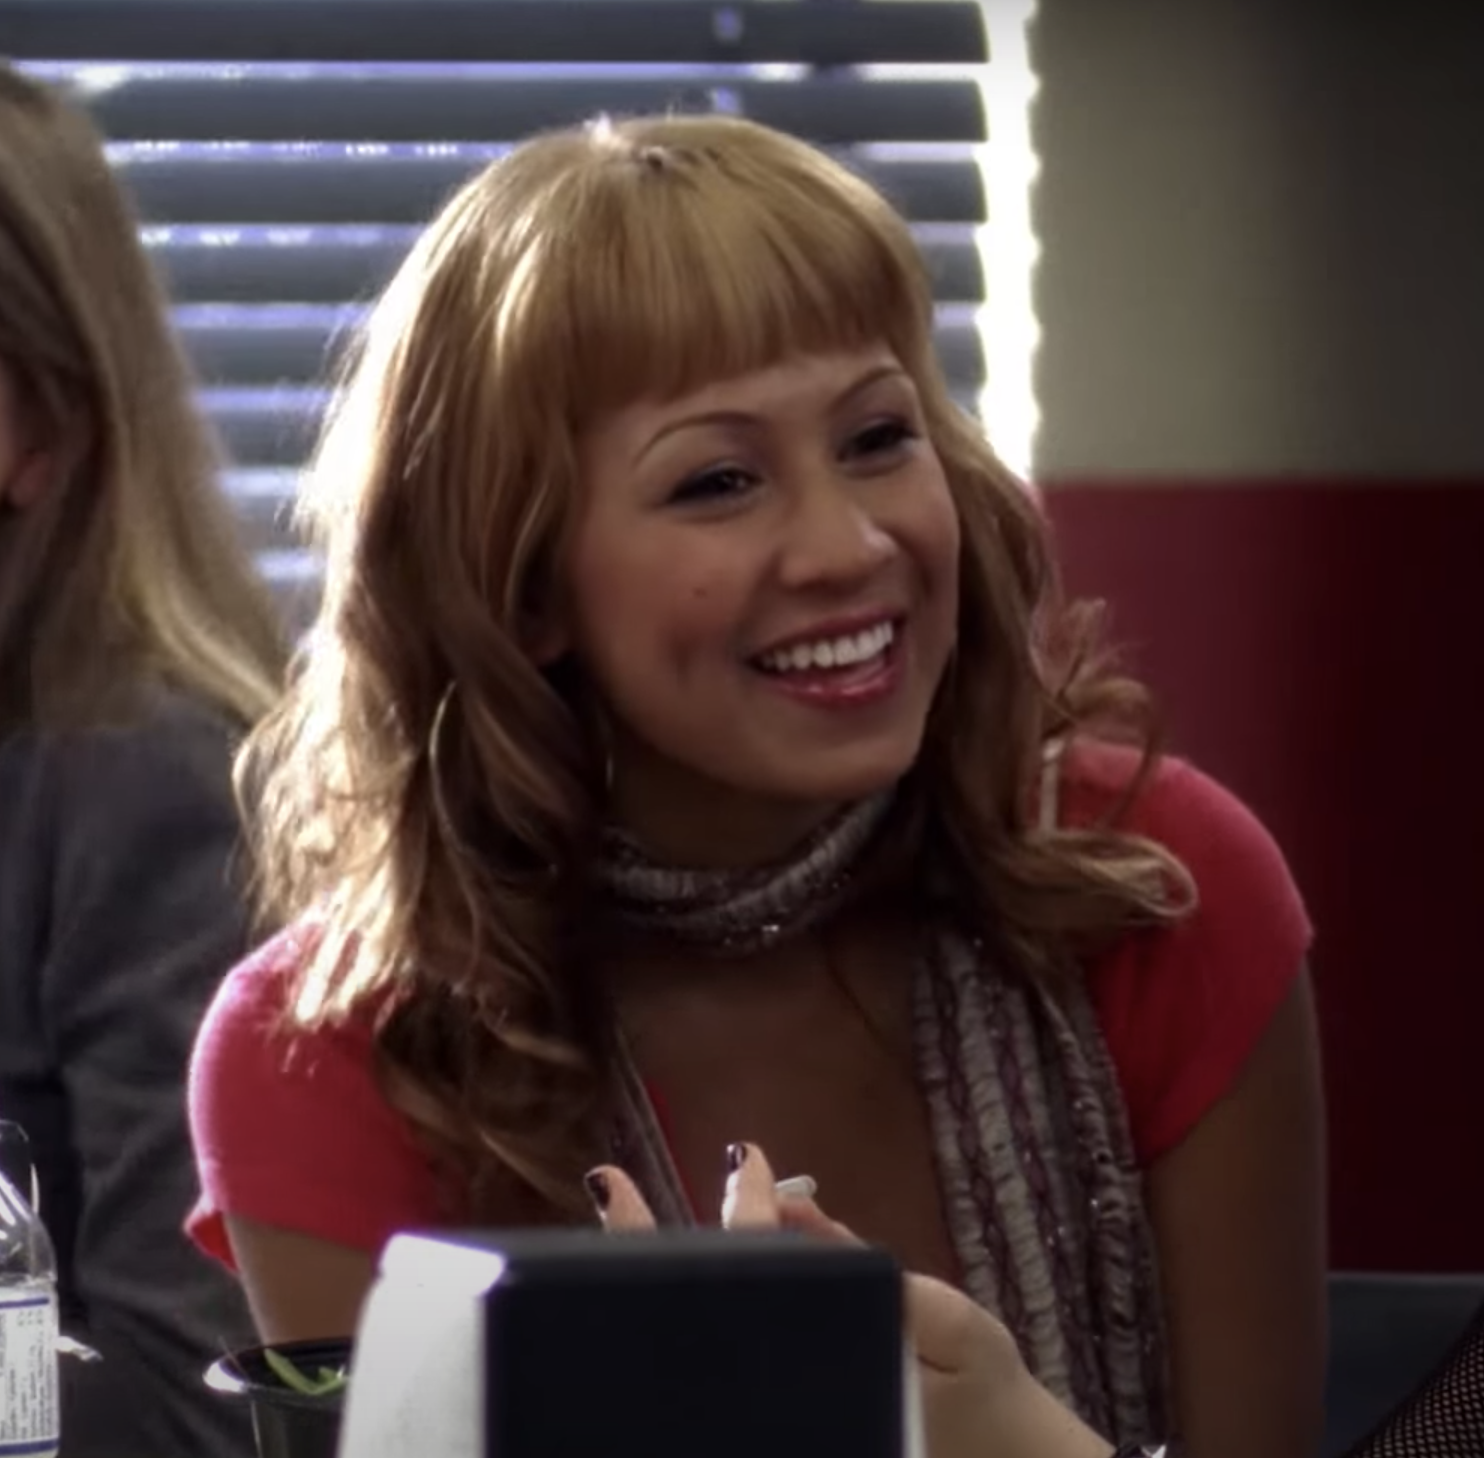 Cassie Steele with orange-tinted blonde hair and bangs